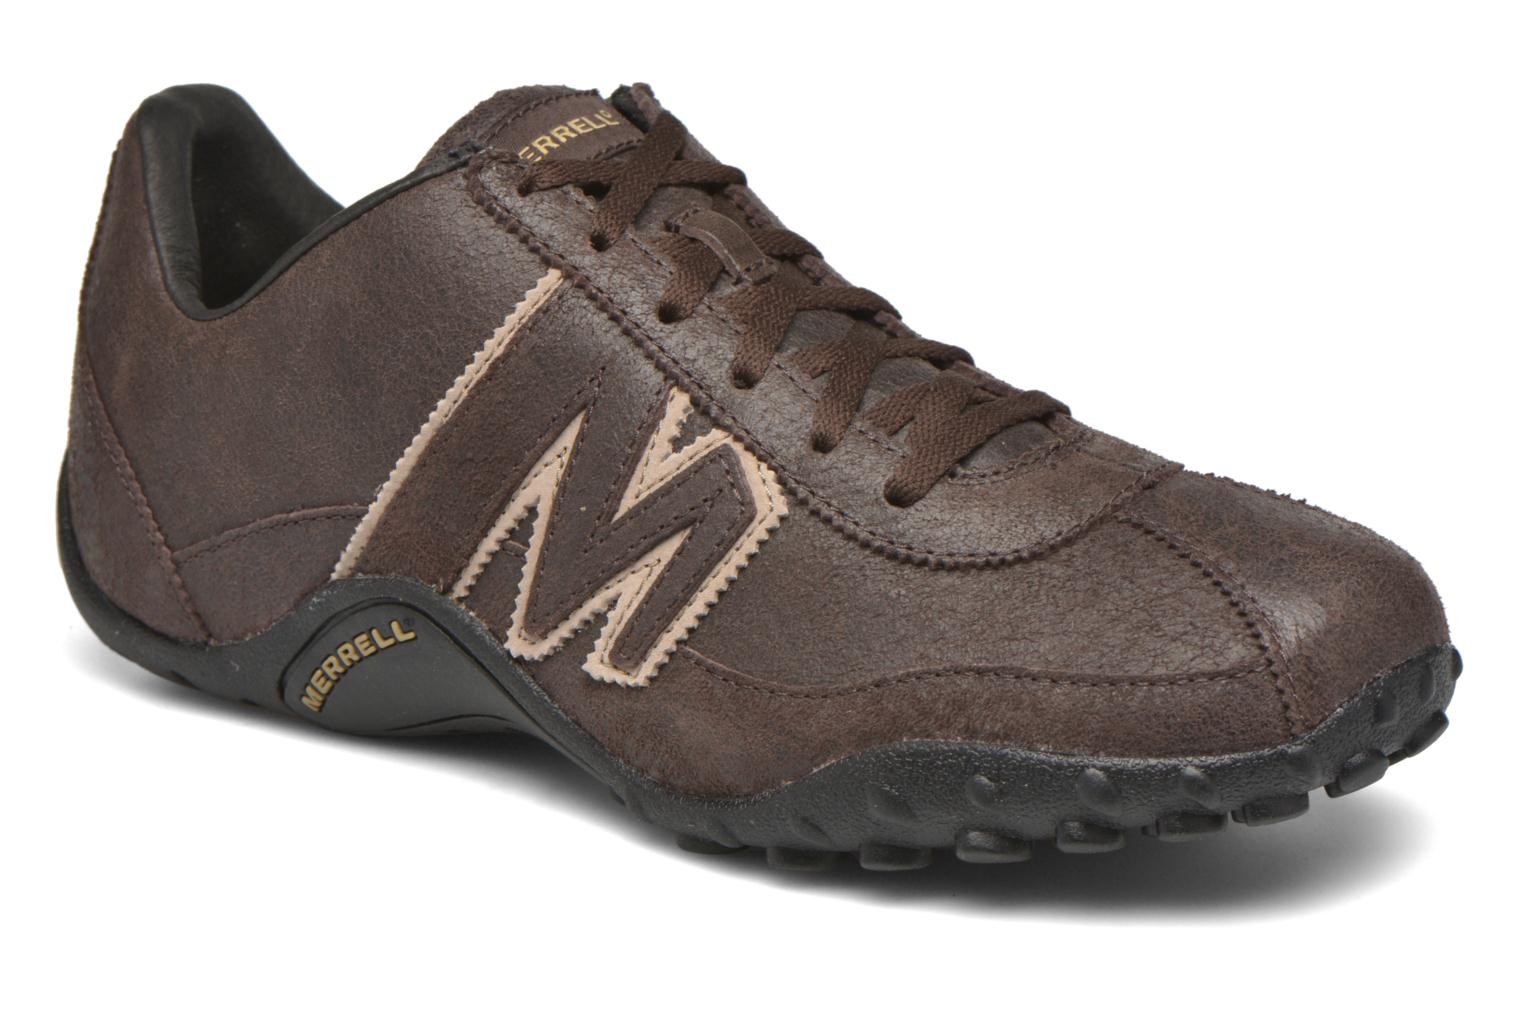 Sneakers Spring Blast Ltr by Merrell